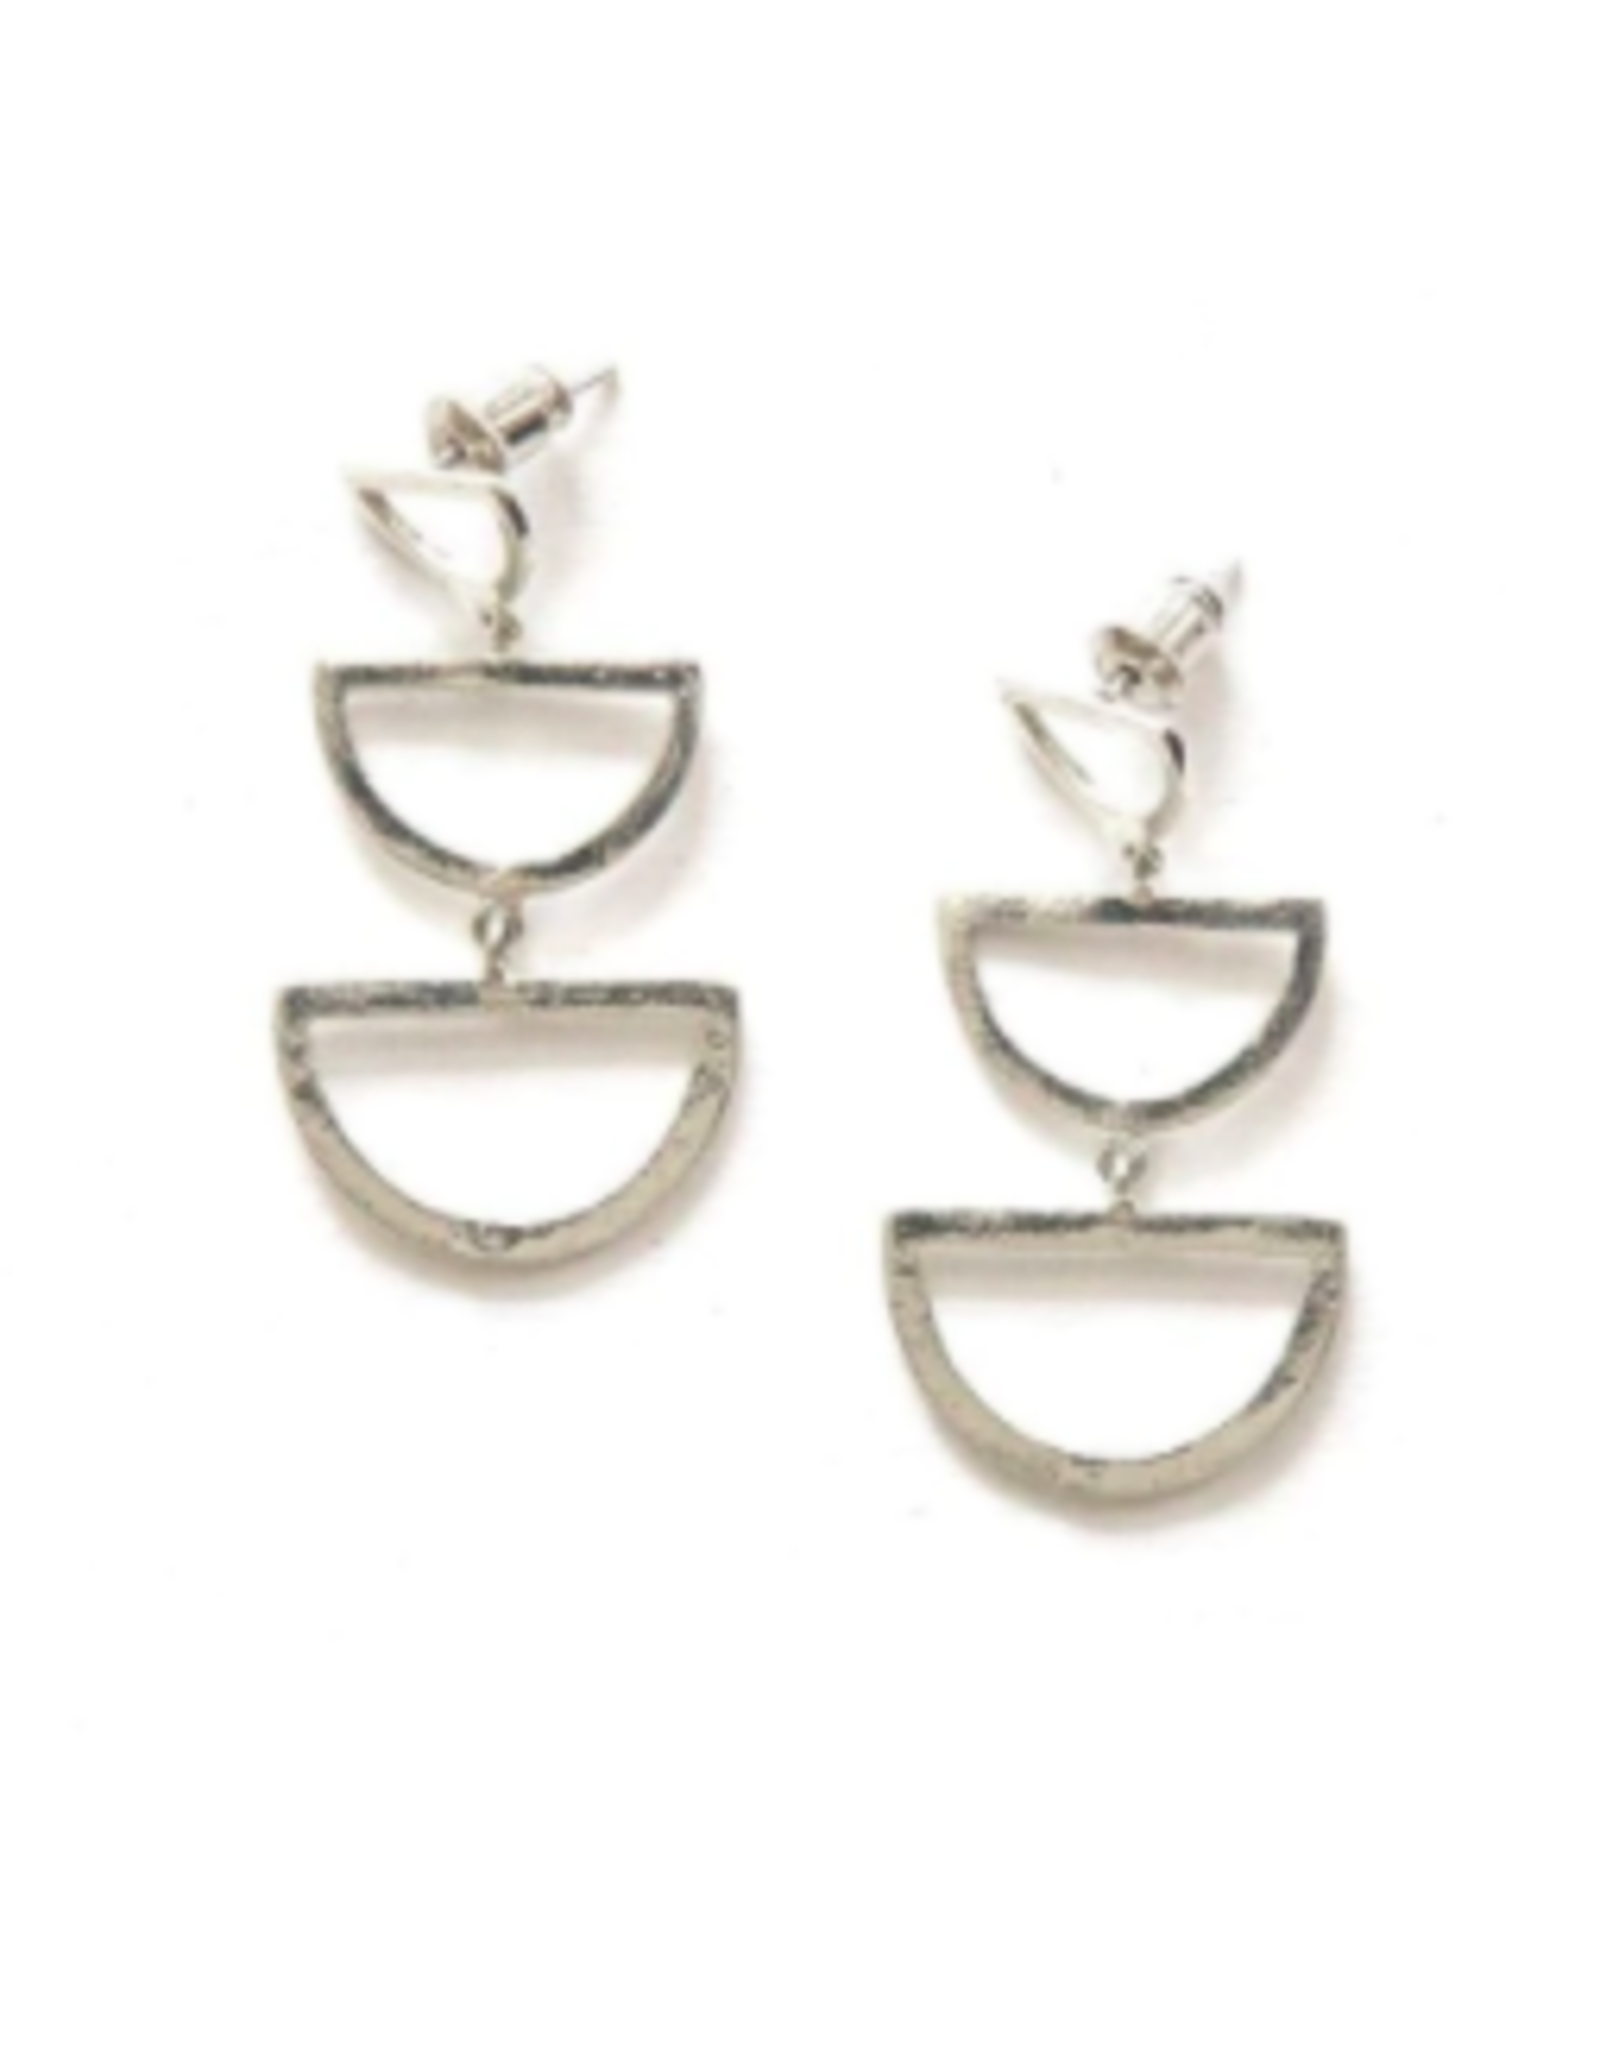 Reverberation Stud Earrings Silver